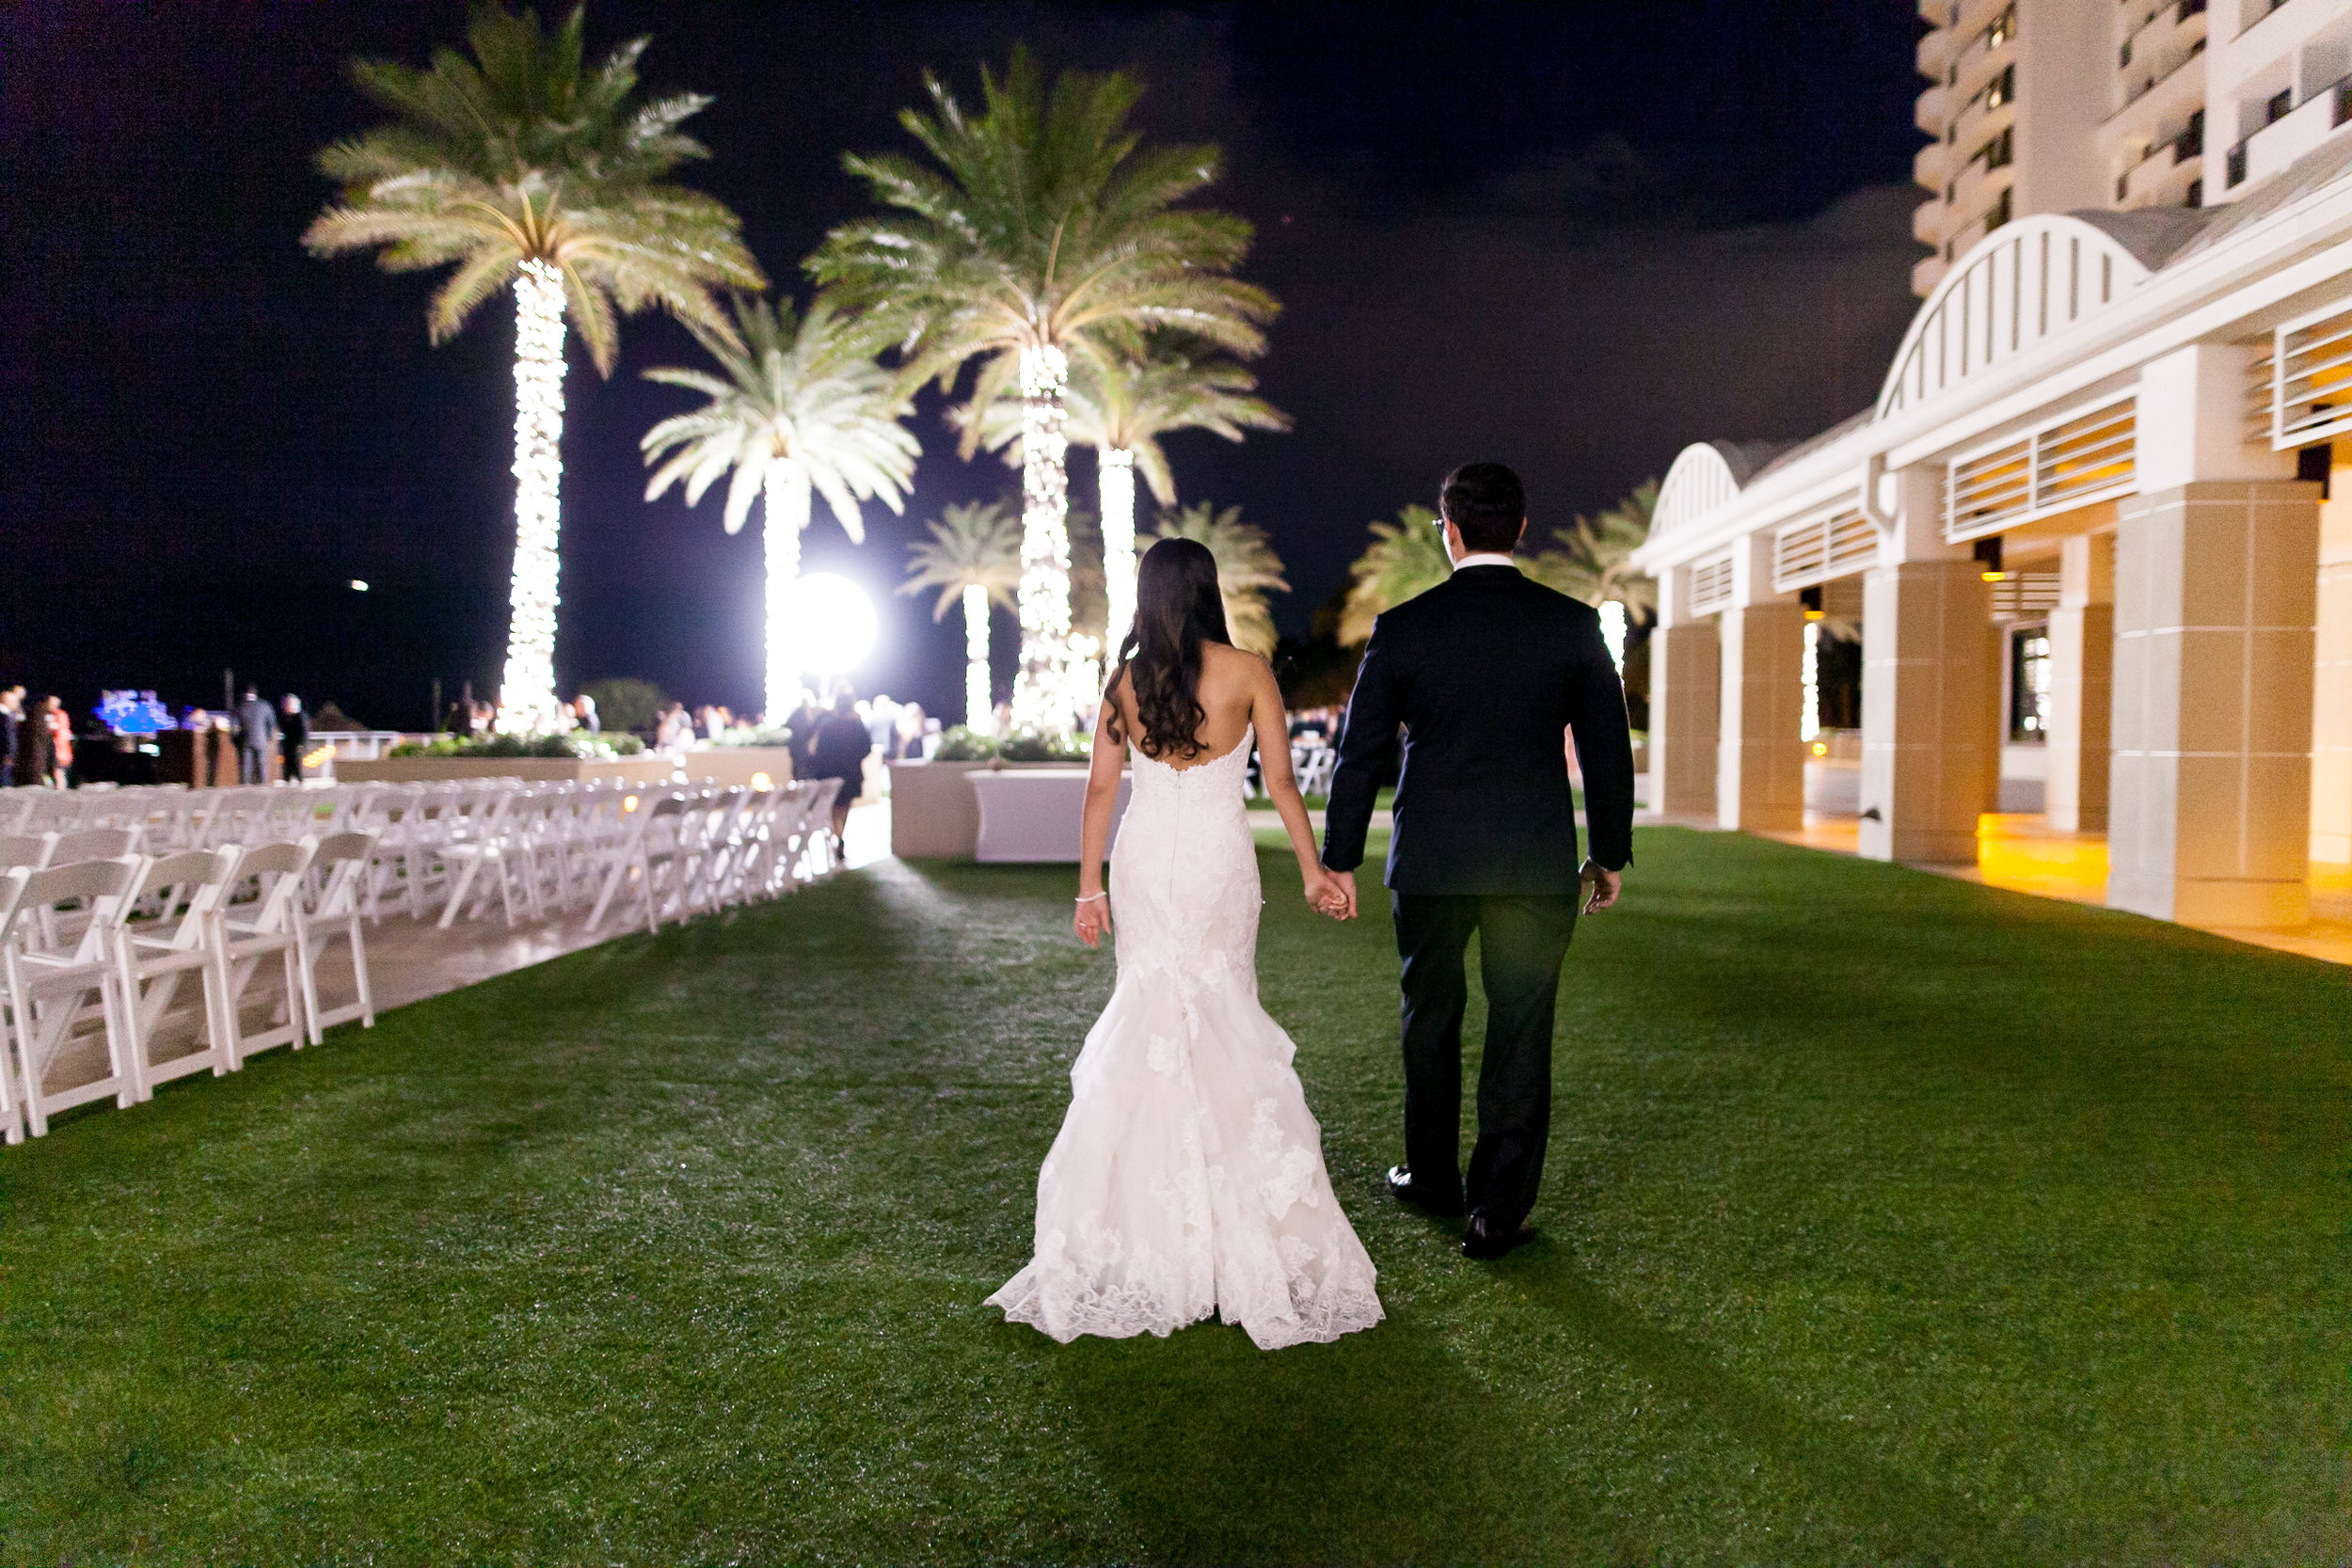 harbor beach marriott ft lauderdale florida wedding by kelilina photography and films-54.jpg